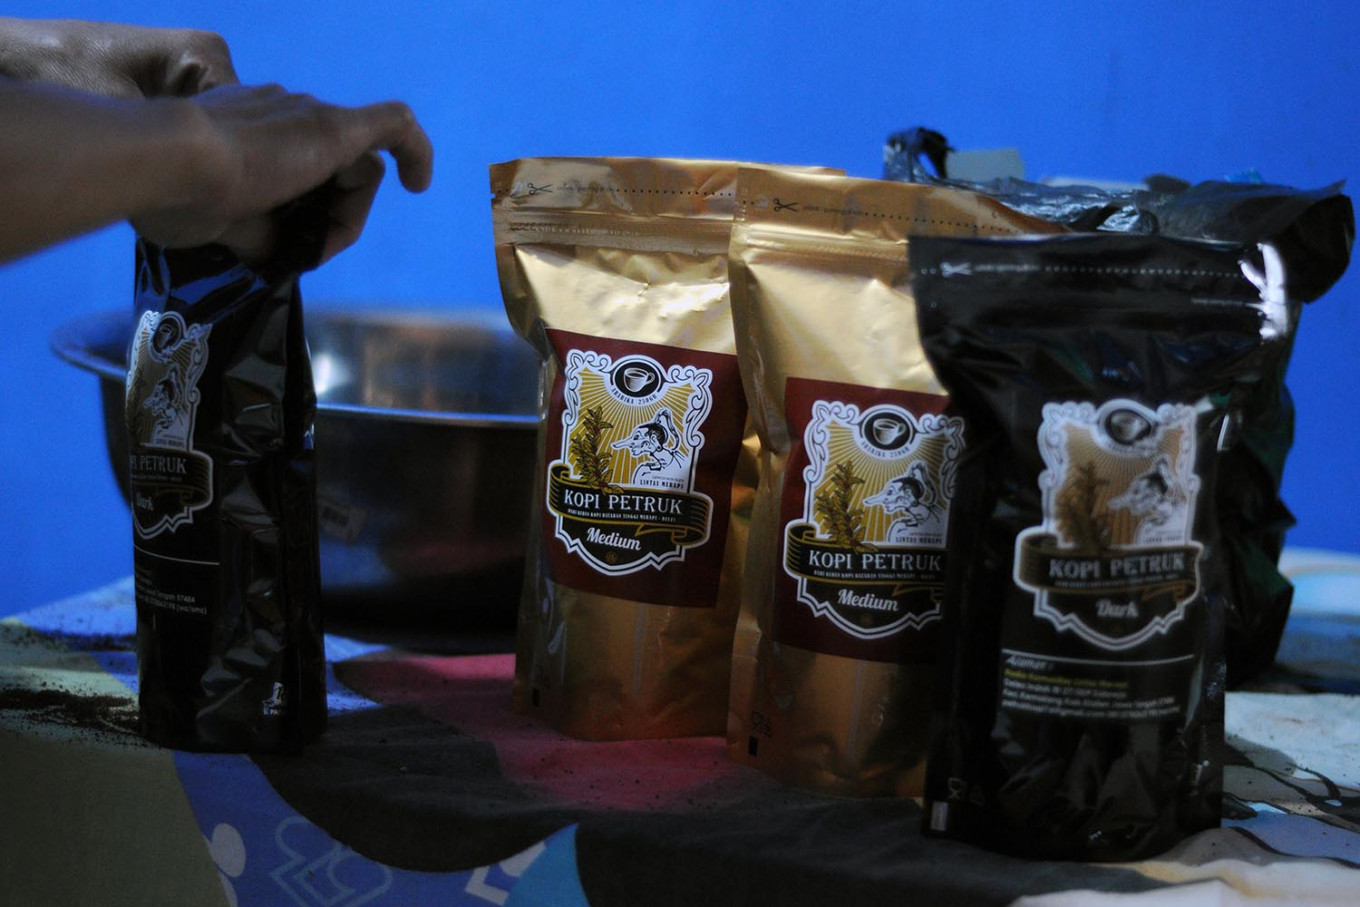 Kopi Petruk is the brand that Sukiman, a coffee farmer in Deles, Klaten regency, Central Java, uses for his coffee products. JP/Magnus Hendratmo